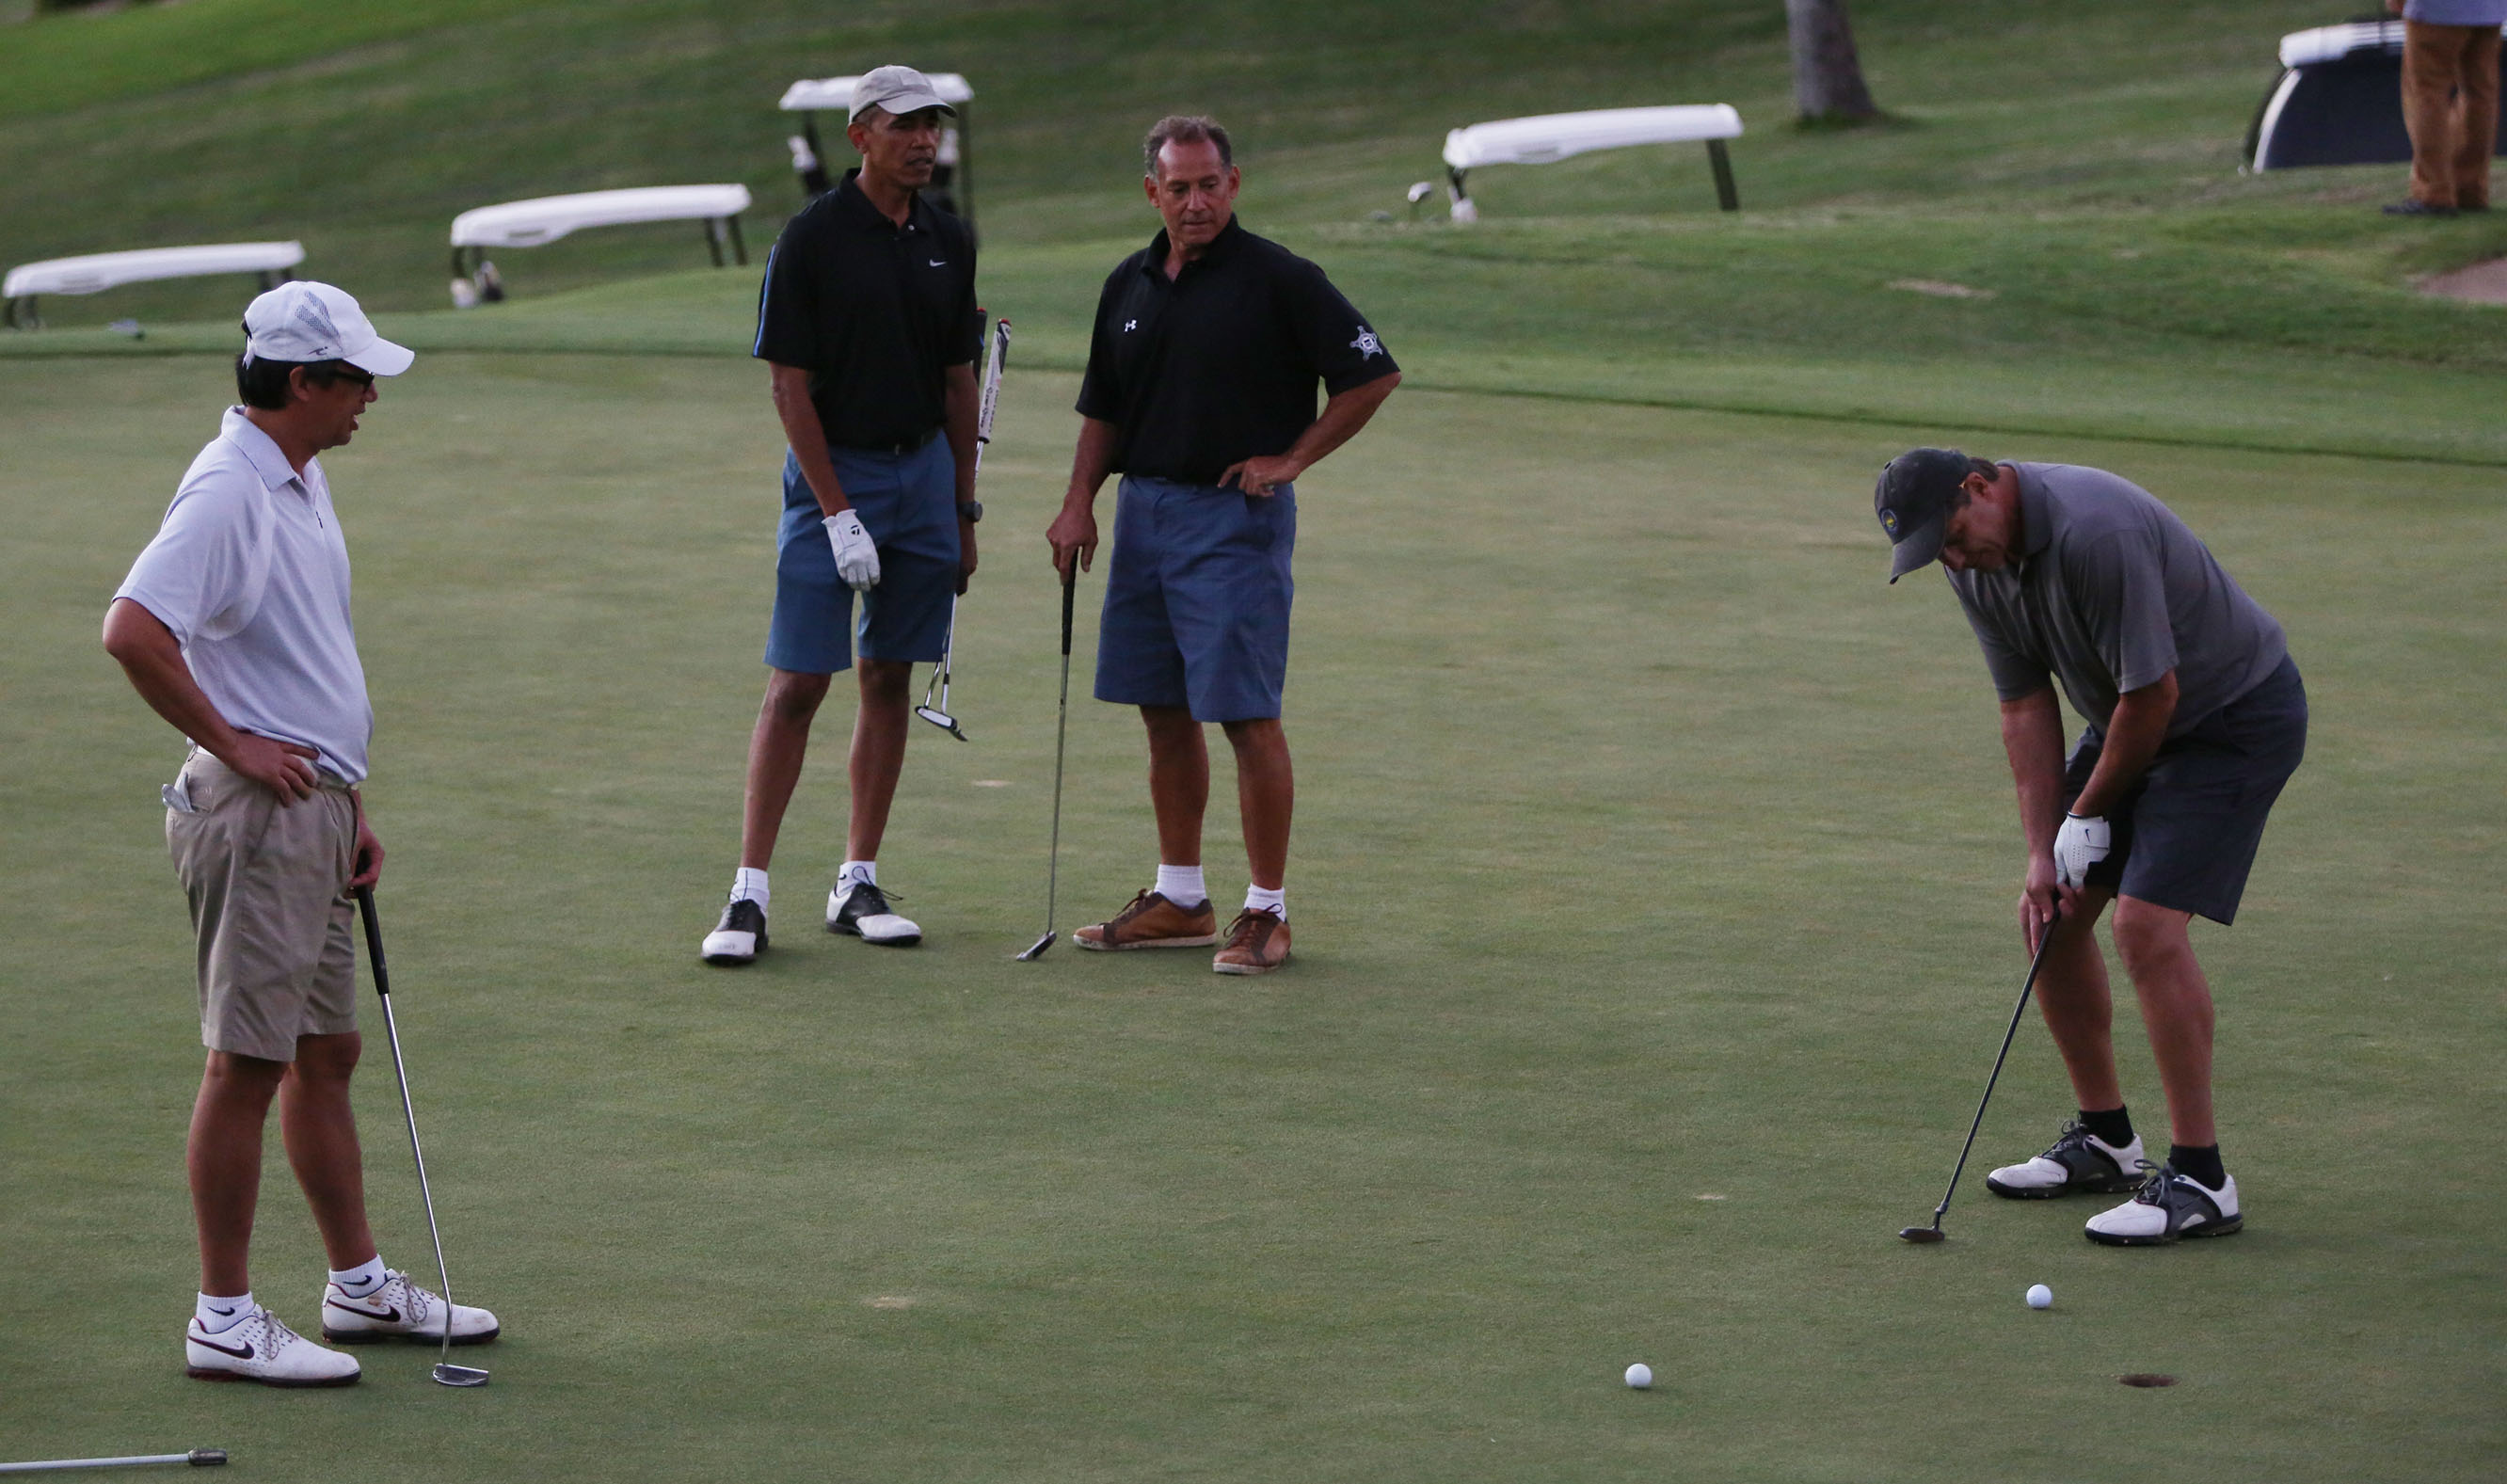 President Barack Obama stands with his childhood friend, Bobby Titcomb, as Greg Orme makes a putt and Mike Ramos watches Tuesday on the 18th green at Mid Pacific Country Club.